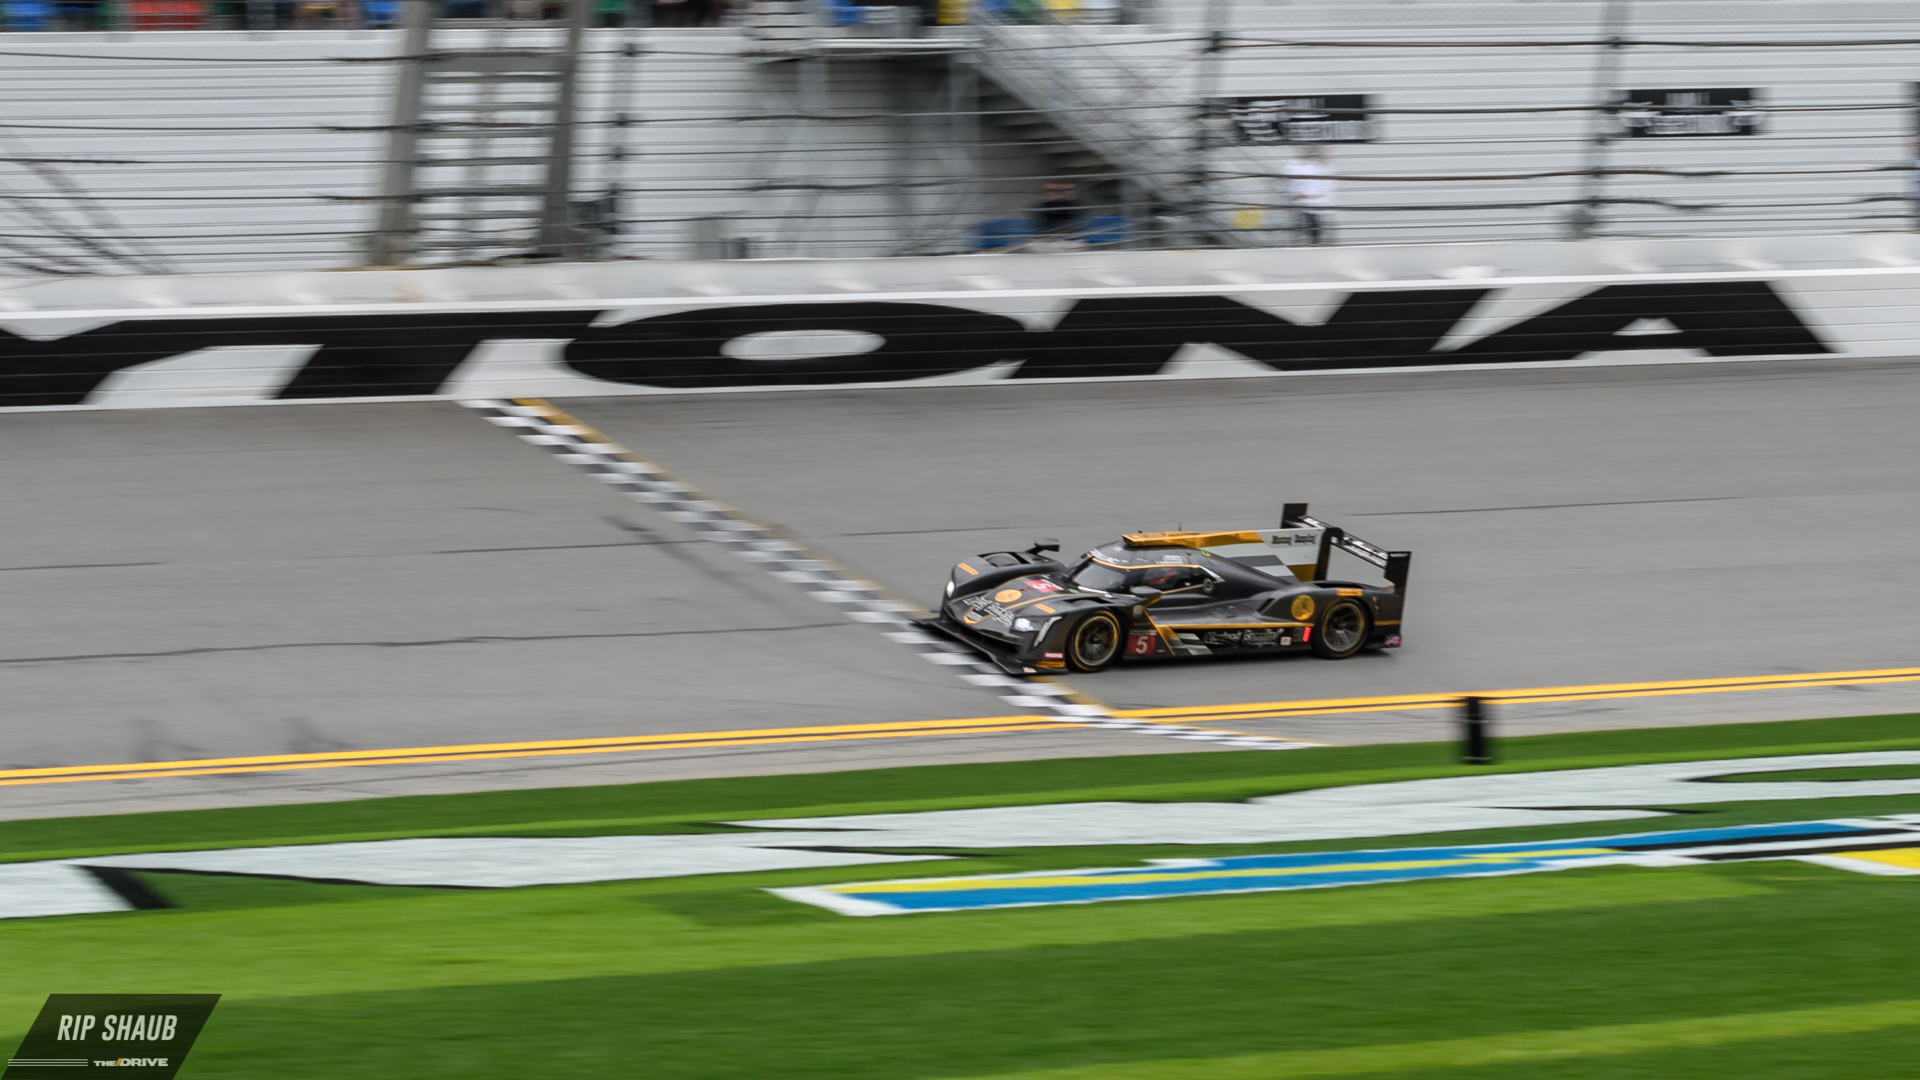 The No. 5 Mustang Sampling Cadillac DPi-V.R commandeered the Rolex 24 to the top step in January.